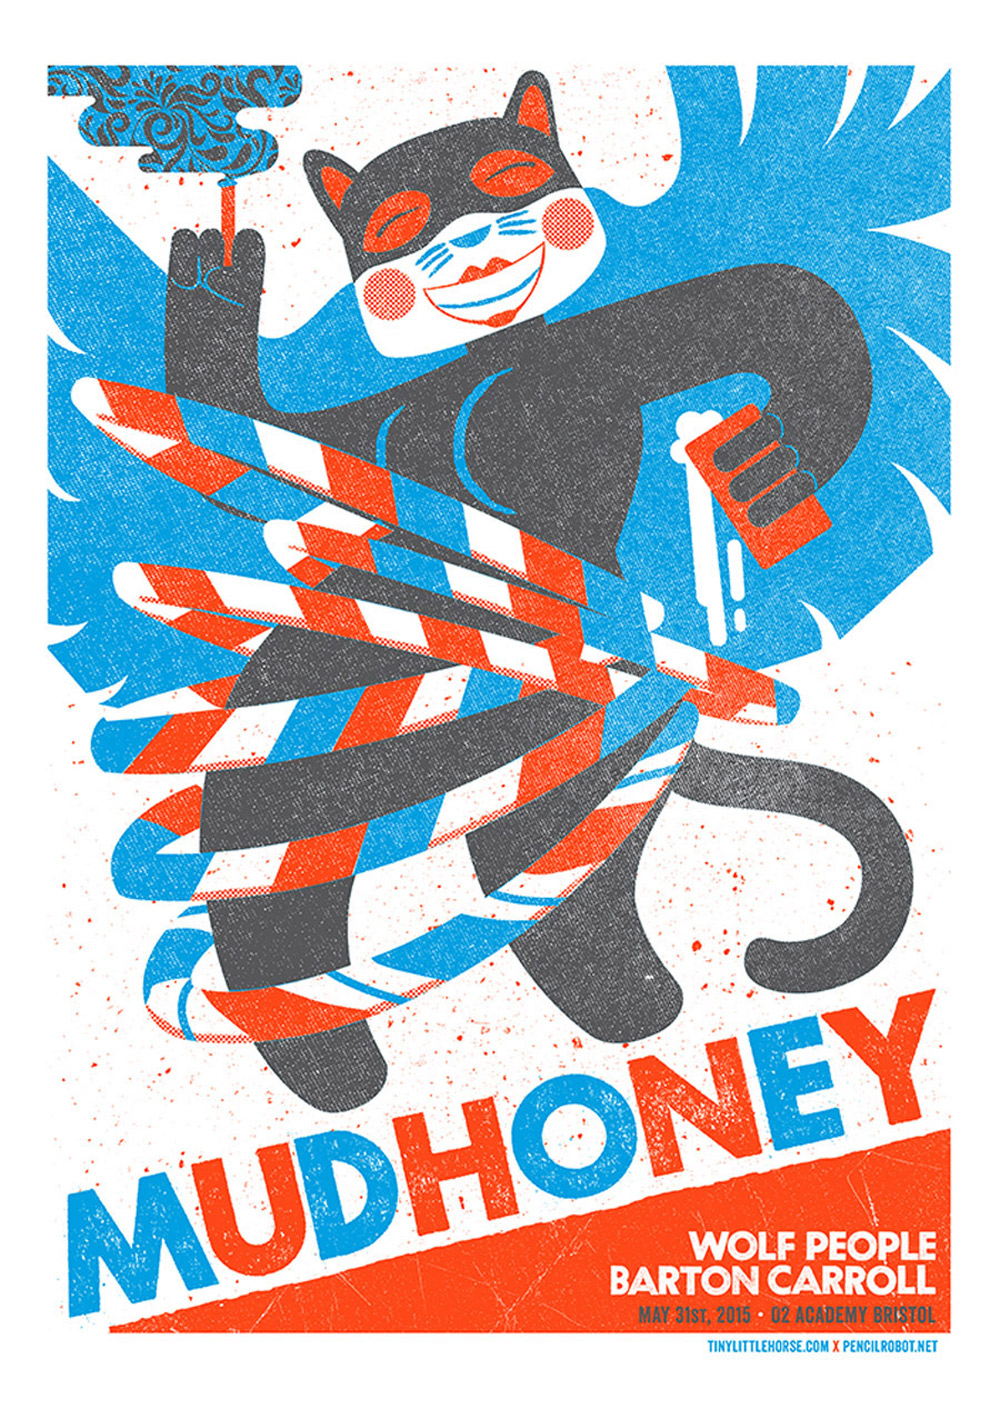 Limited edition screen print, Secret Serpents and Mudhoney.